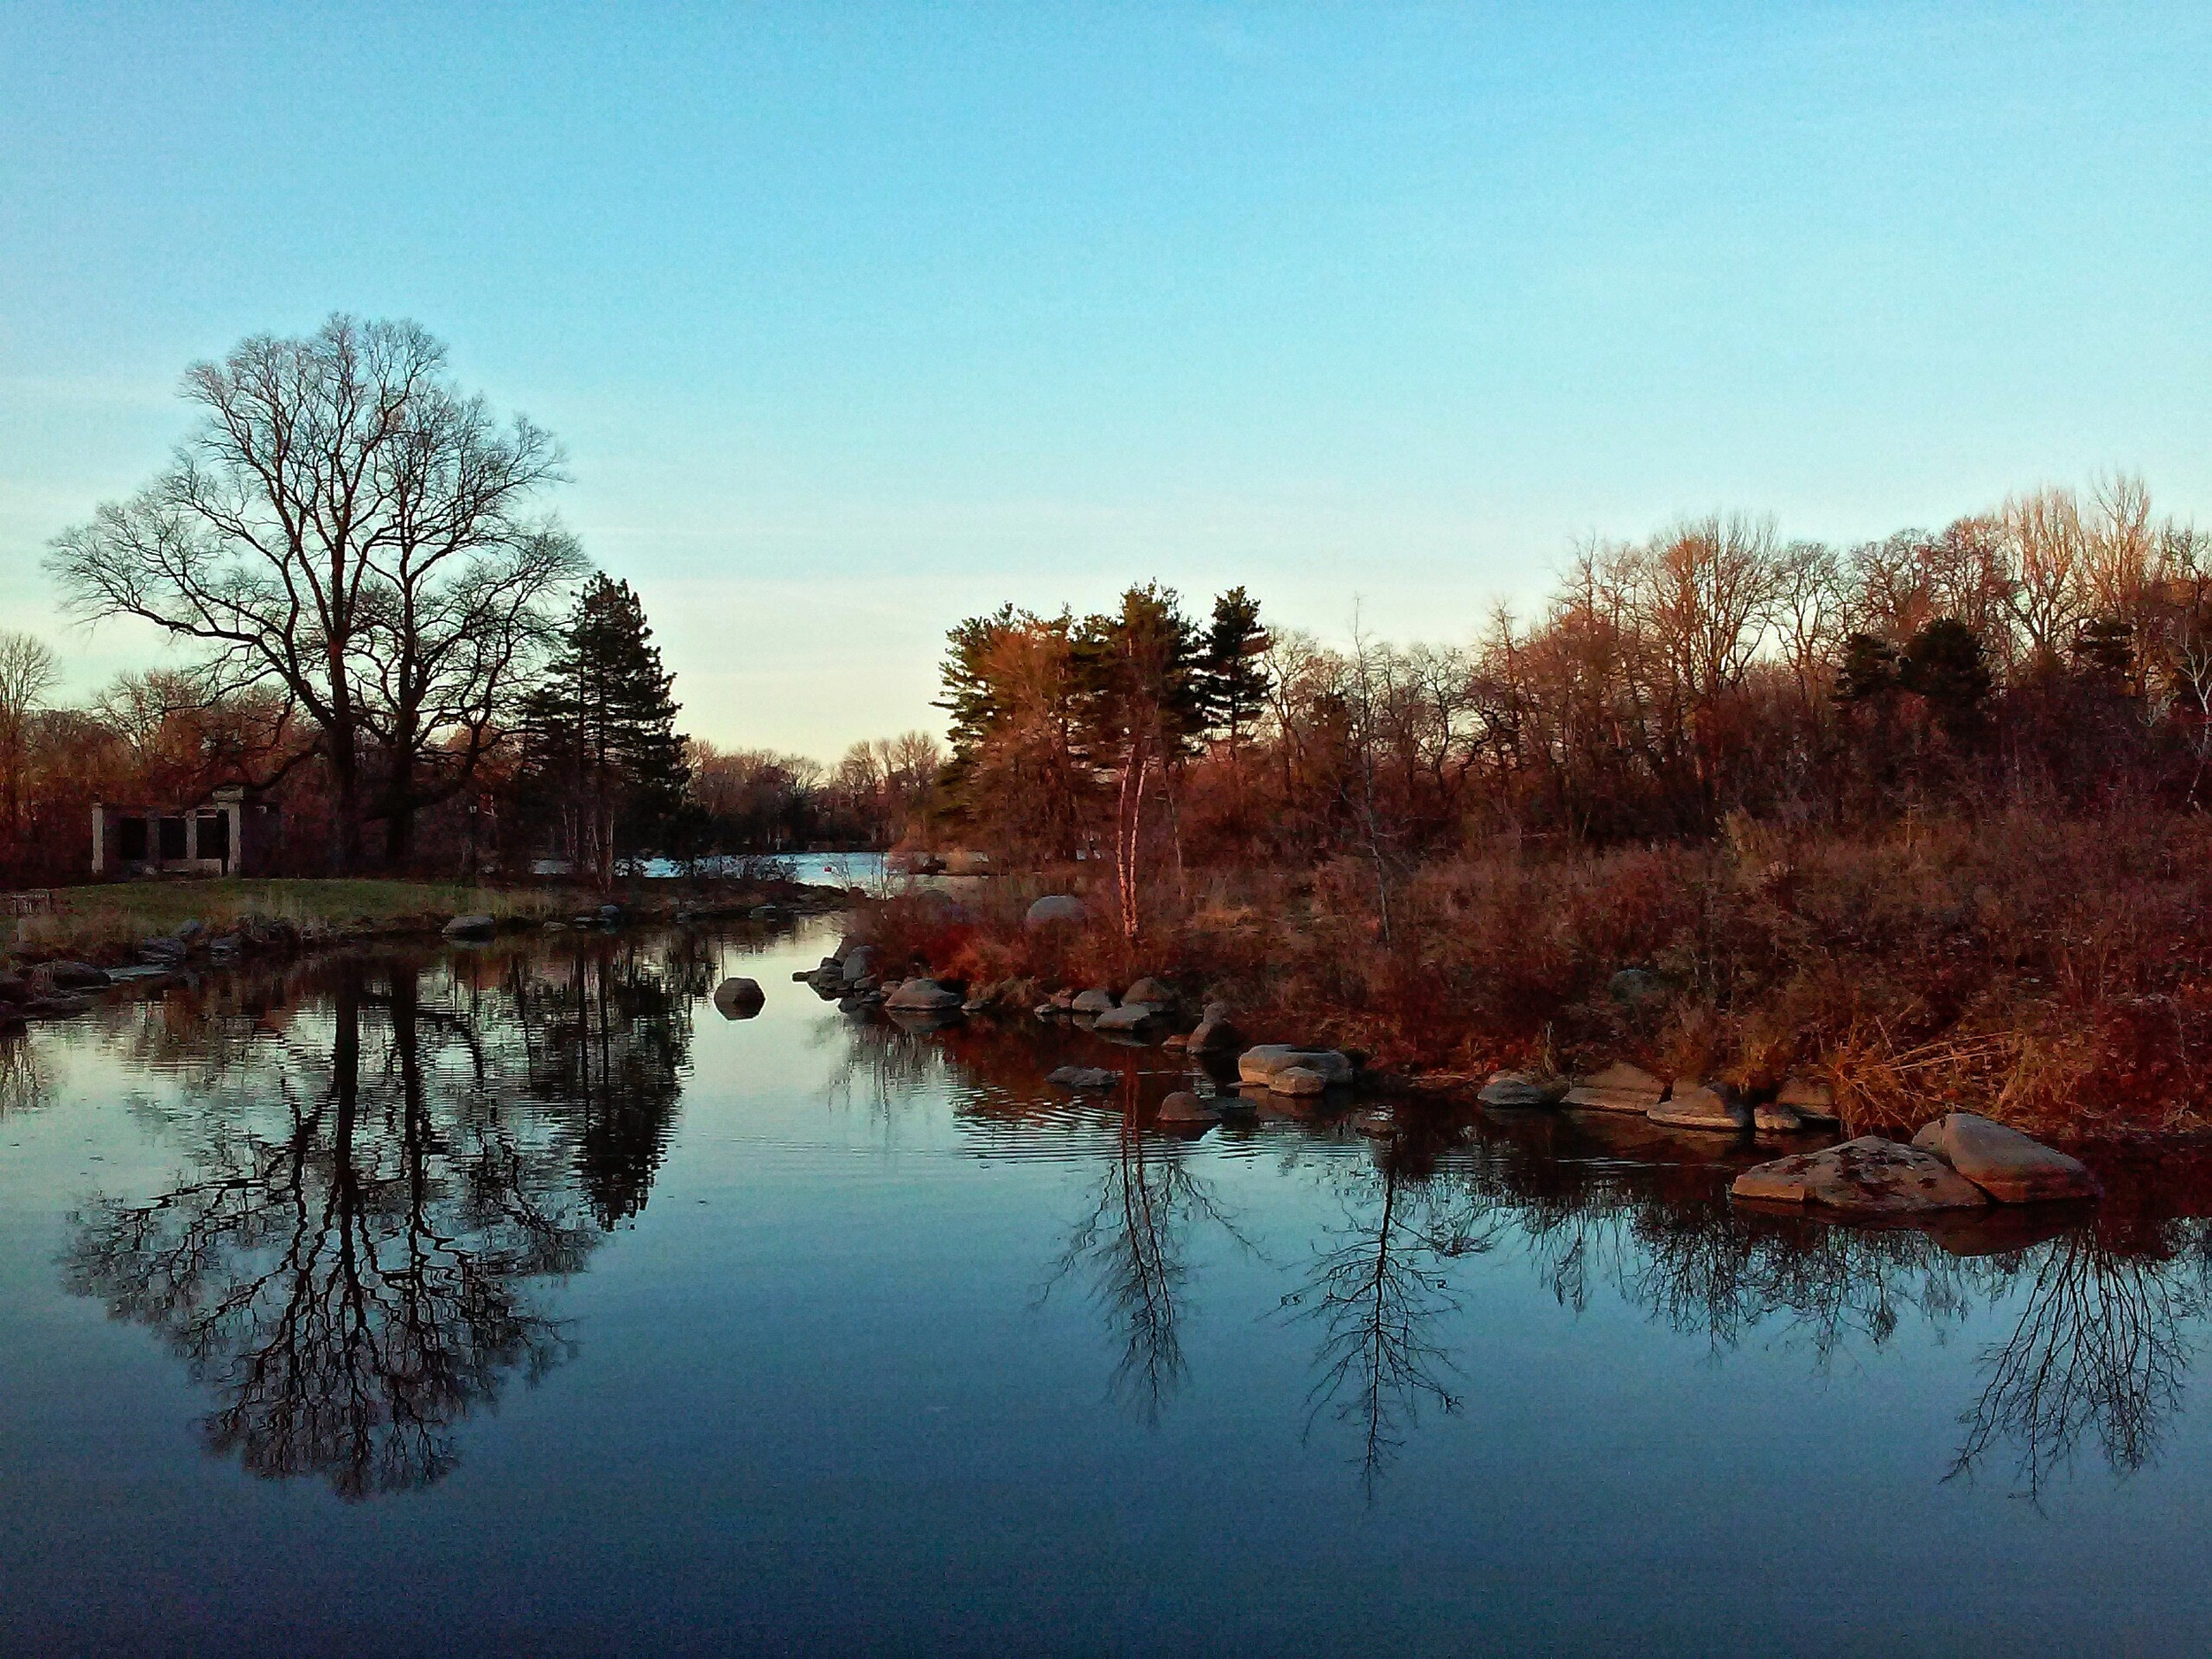 prospect-park-lake-reflection-wbc.jpg